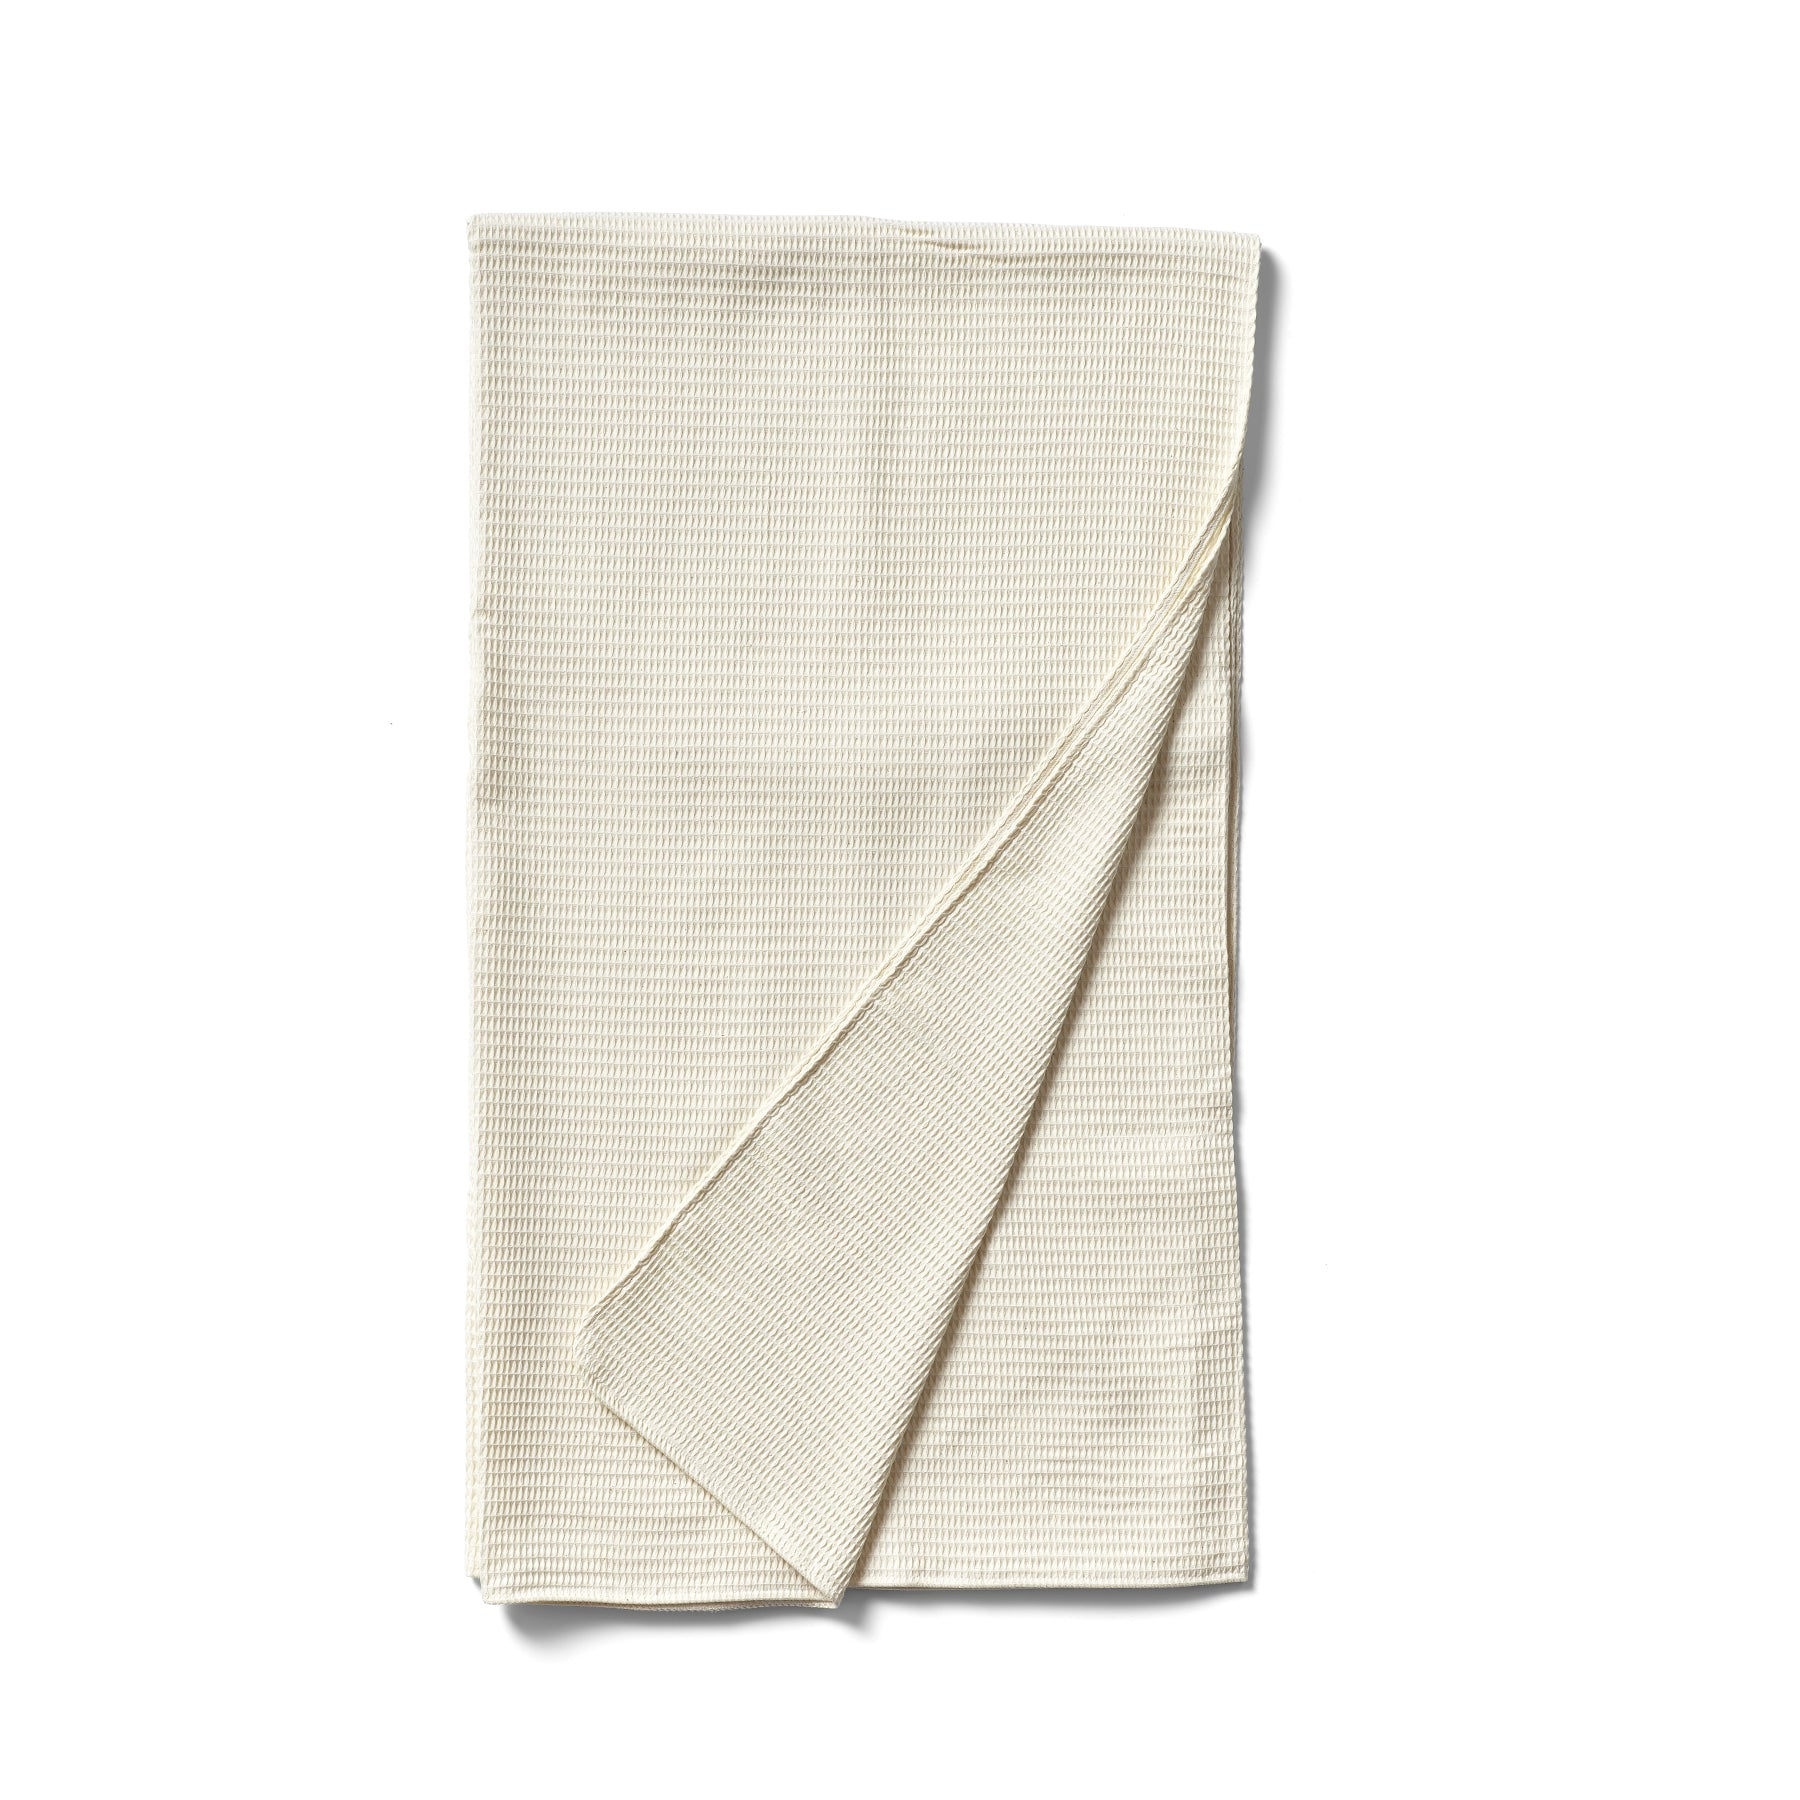 Native Organic Organic Cotton Waffle Weave Throw In Natural Heath Ceramics